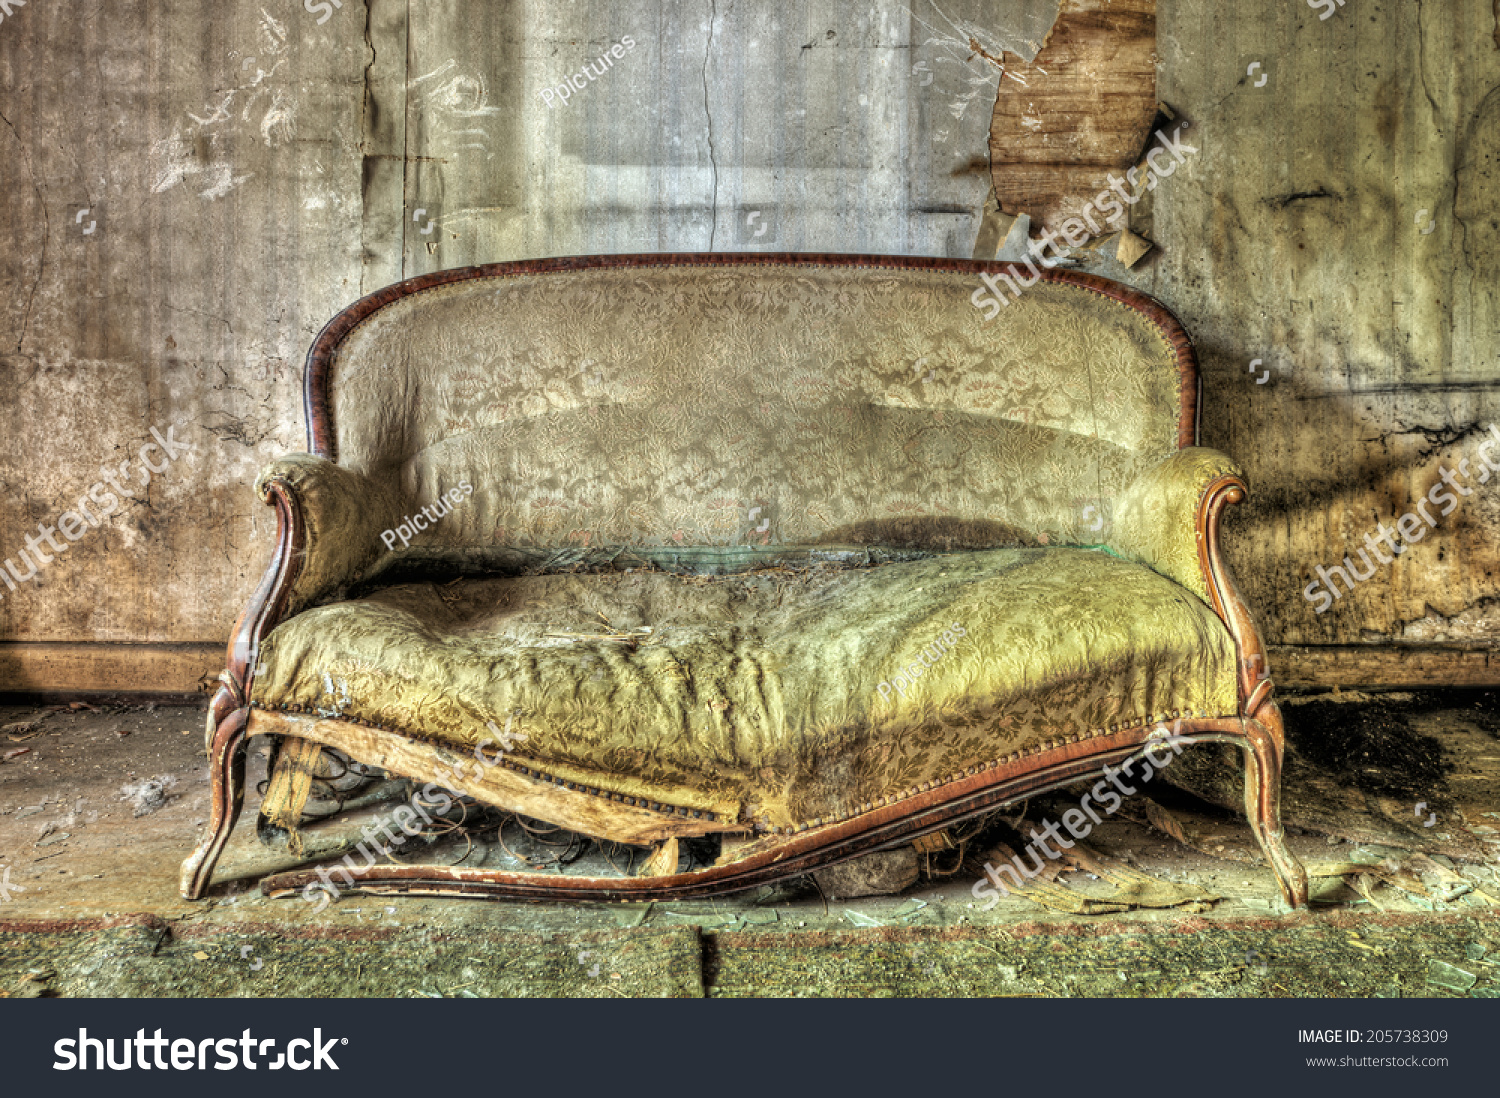 Rotten Sofa In An Abandoned House Stock Photo 205738309